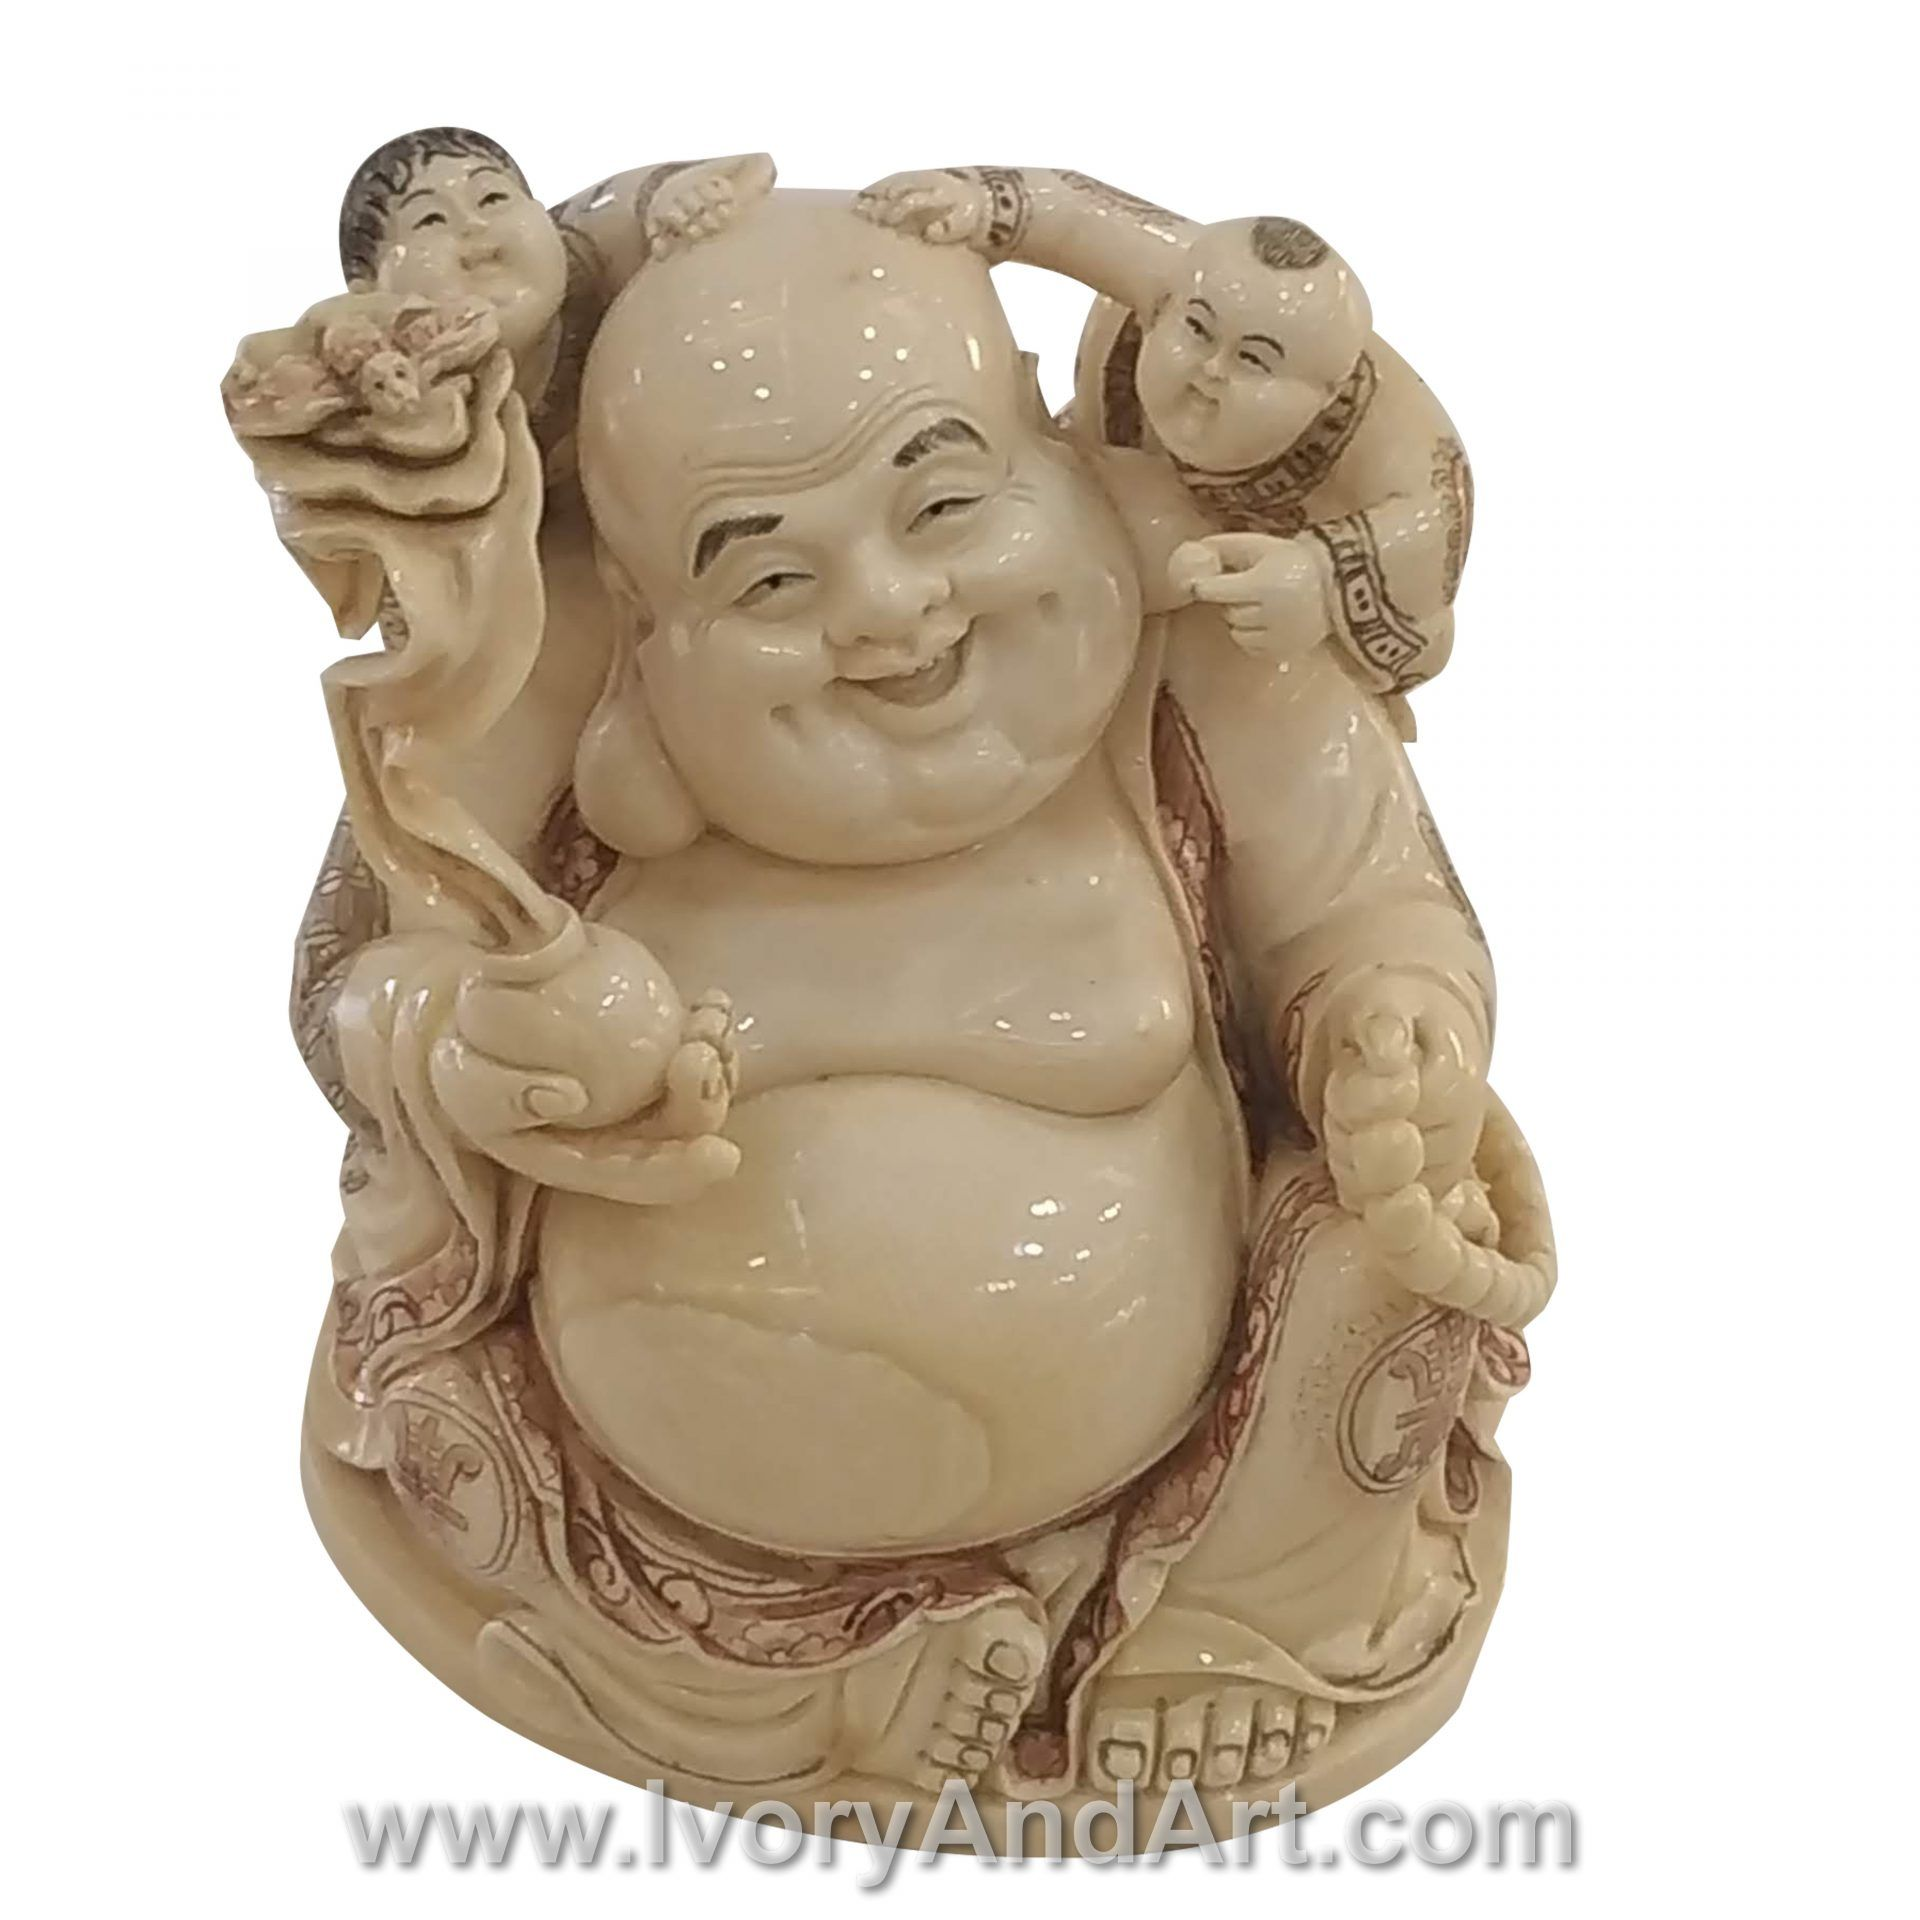 Mammoth Ivory Carvings Of Laughing Buddha Playing with Two